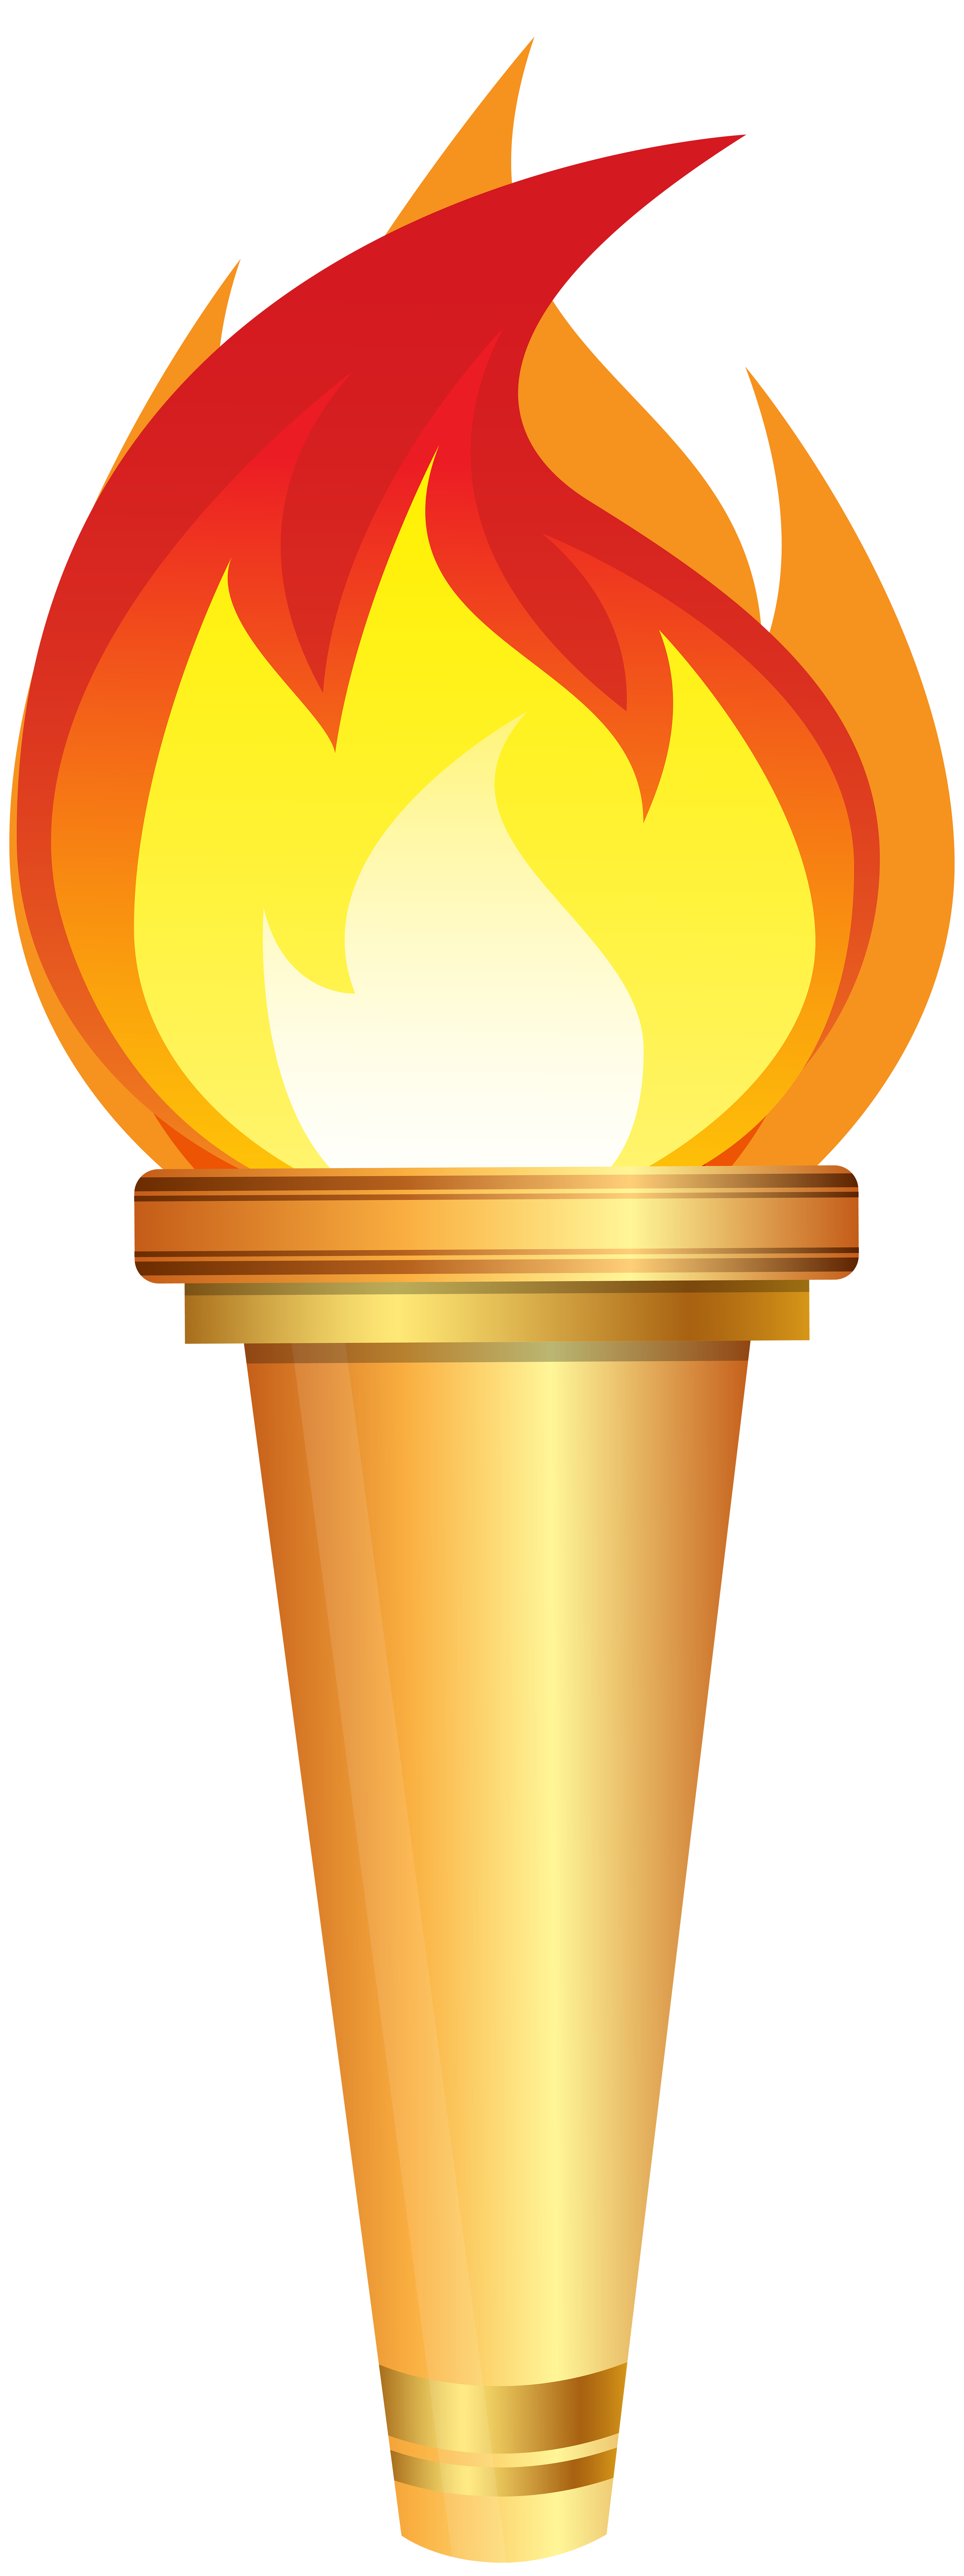 Olympic png clip art. Torch clipart